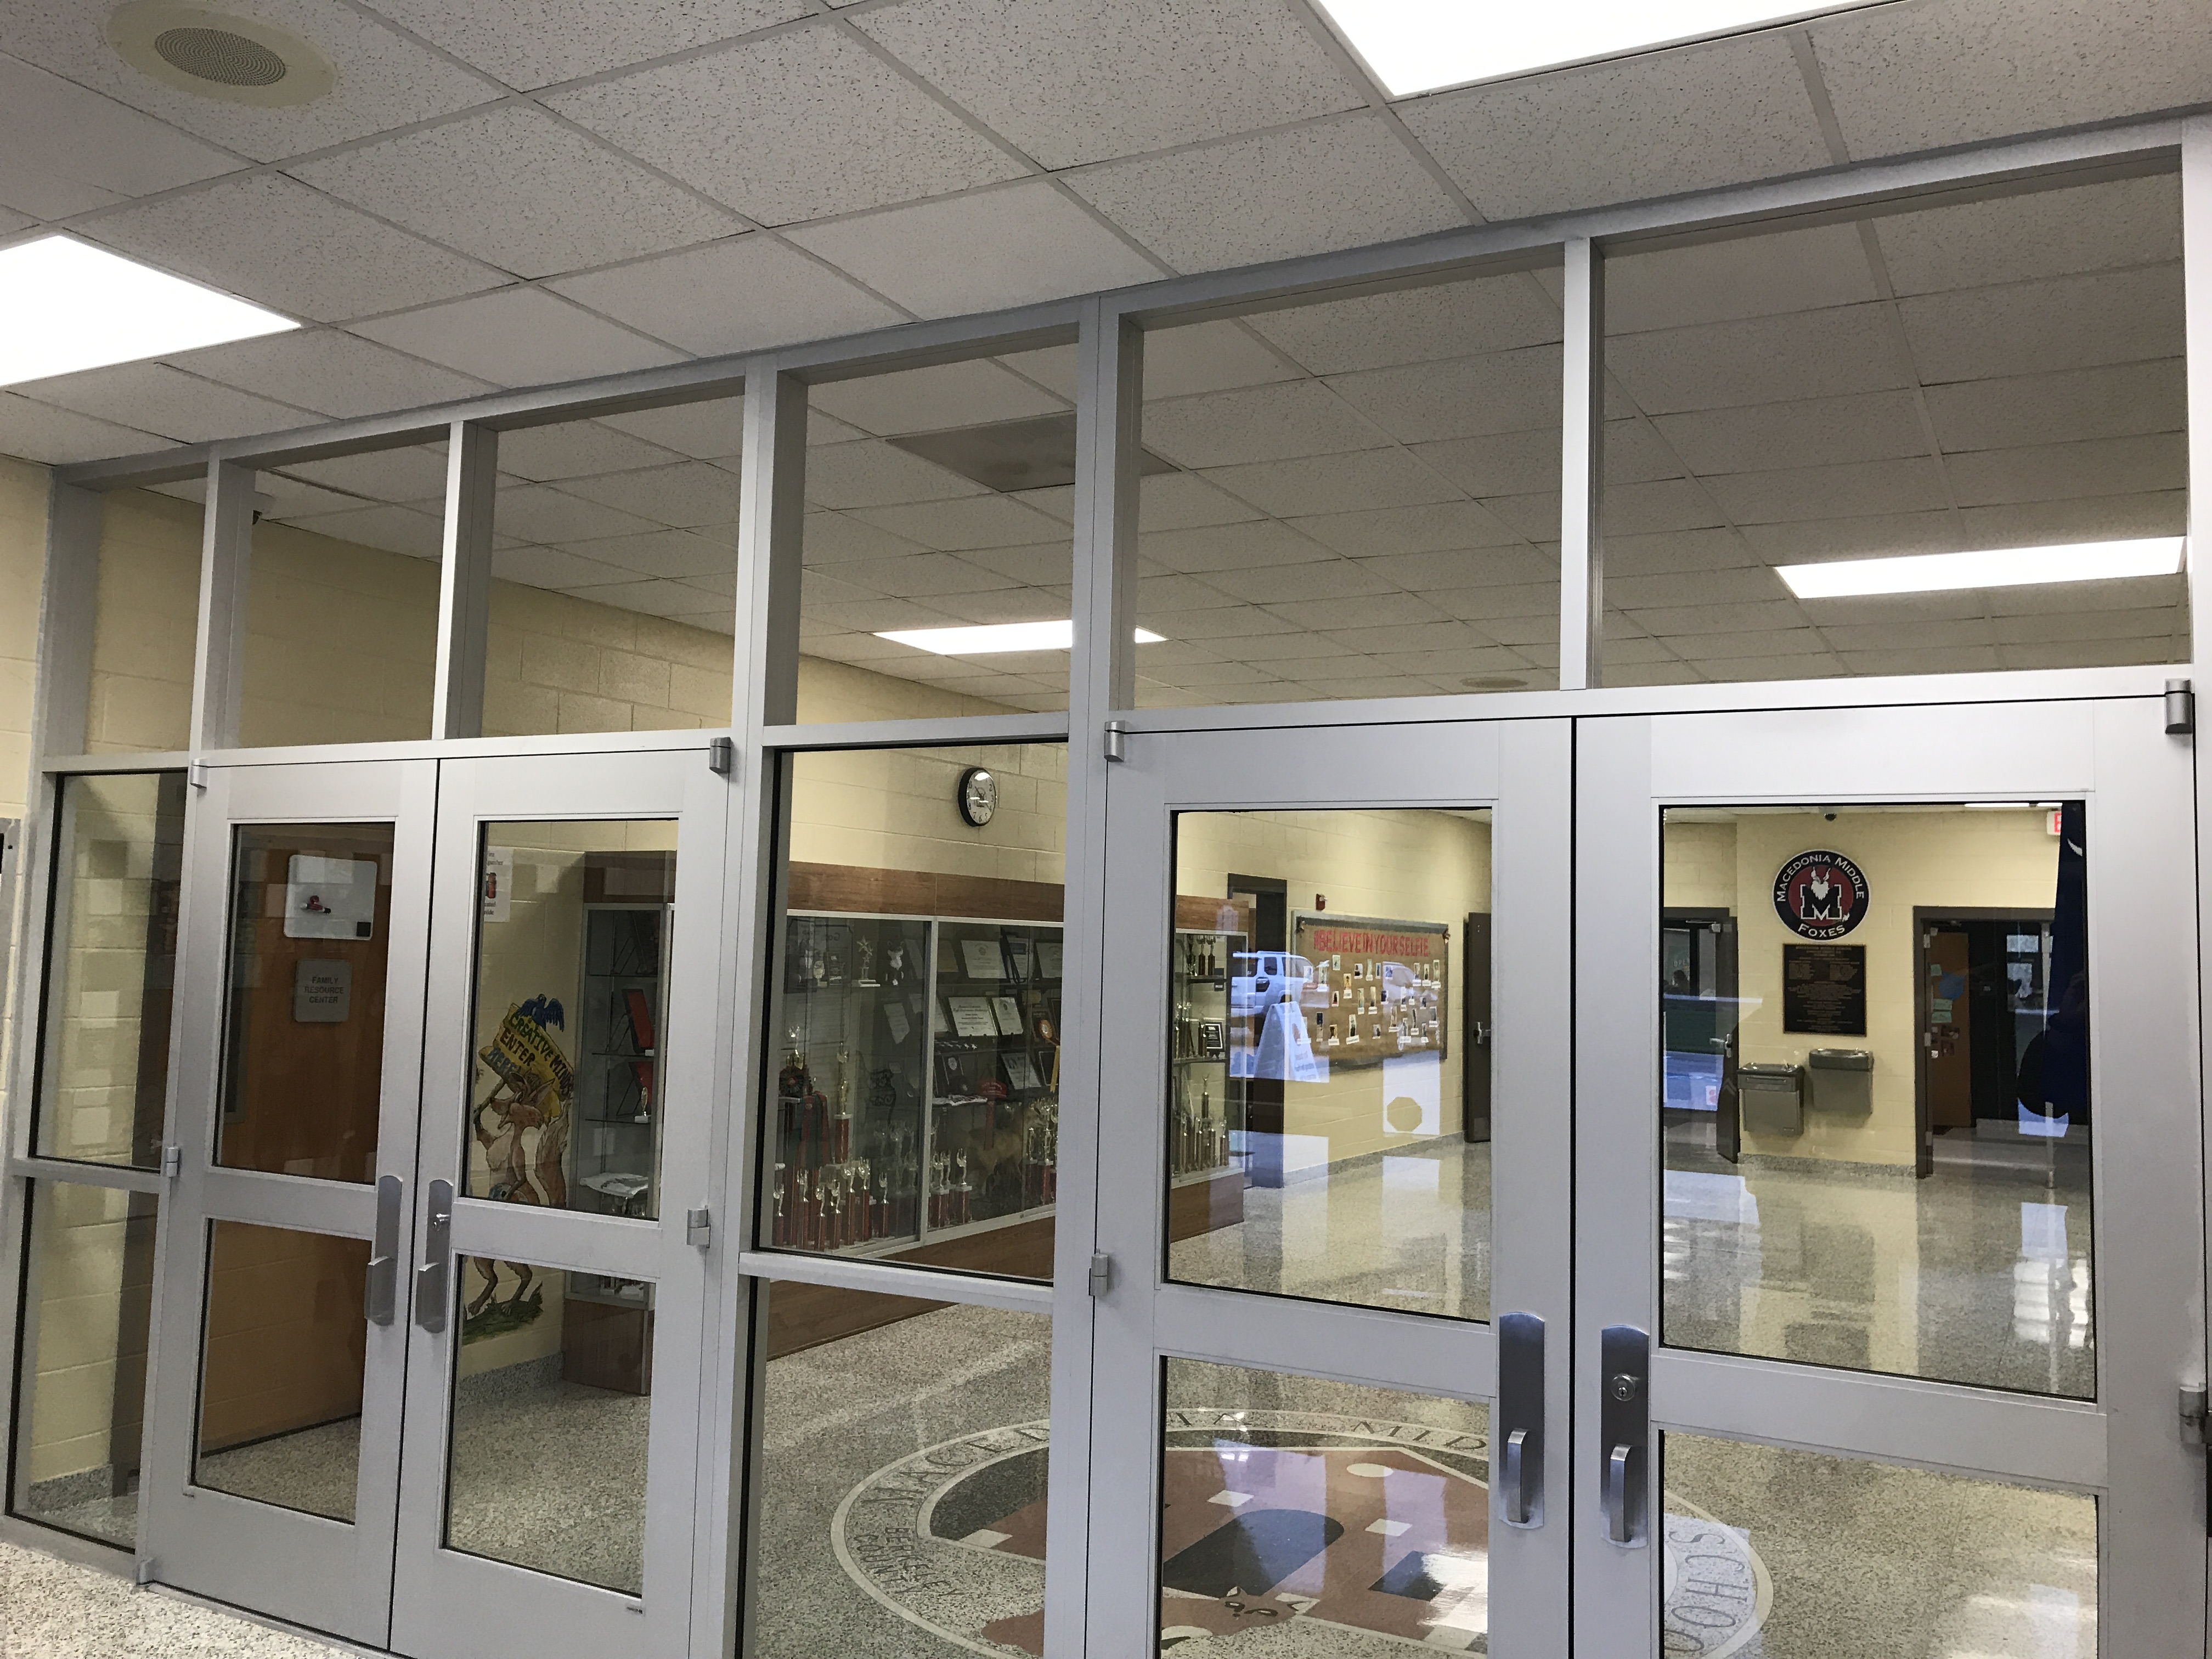 9 Tips for More Effective School Lockdowns